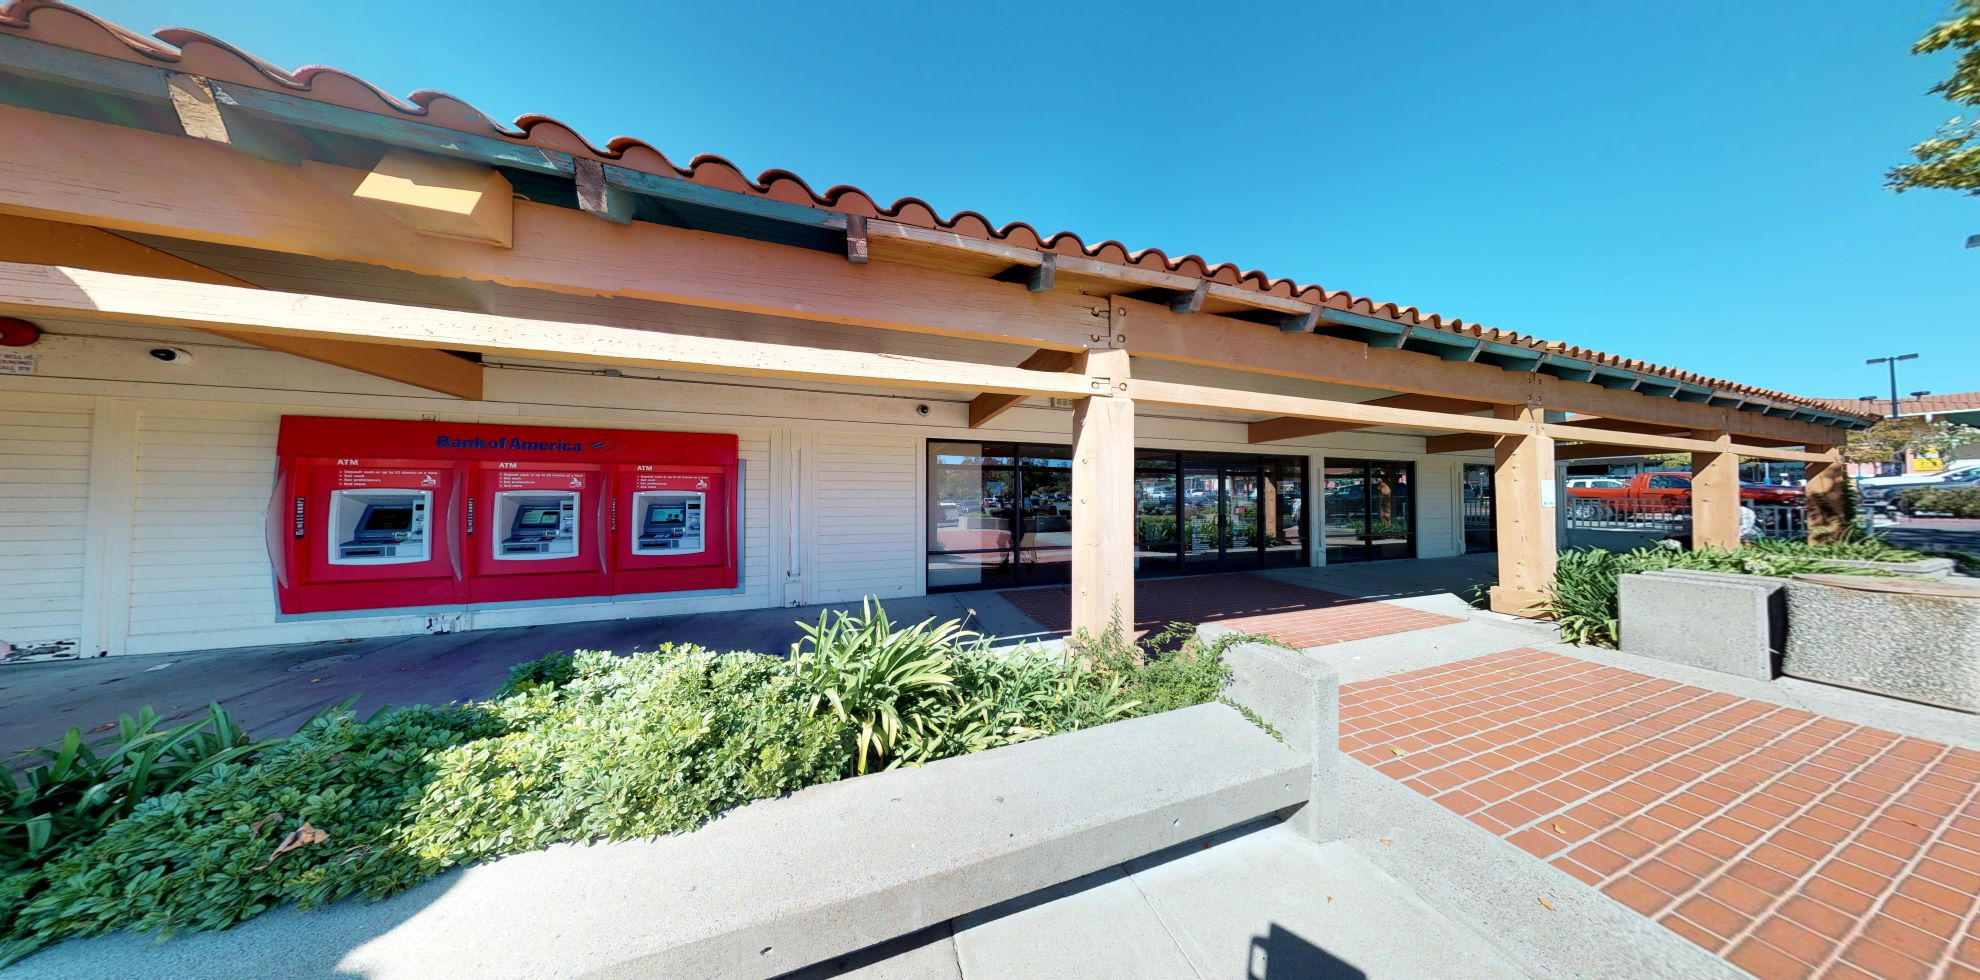 Bank of America financial center with walk-up ATM   1611 Sycamore Ave, Hercules, CA 94547